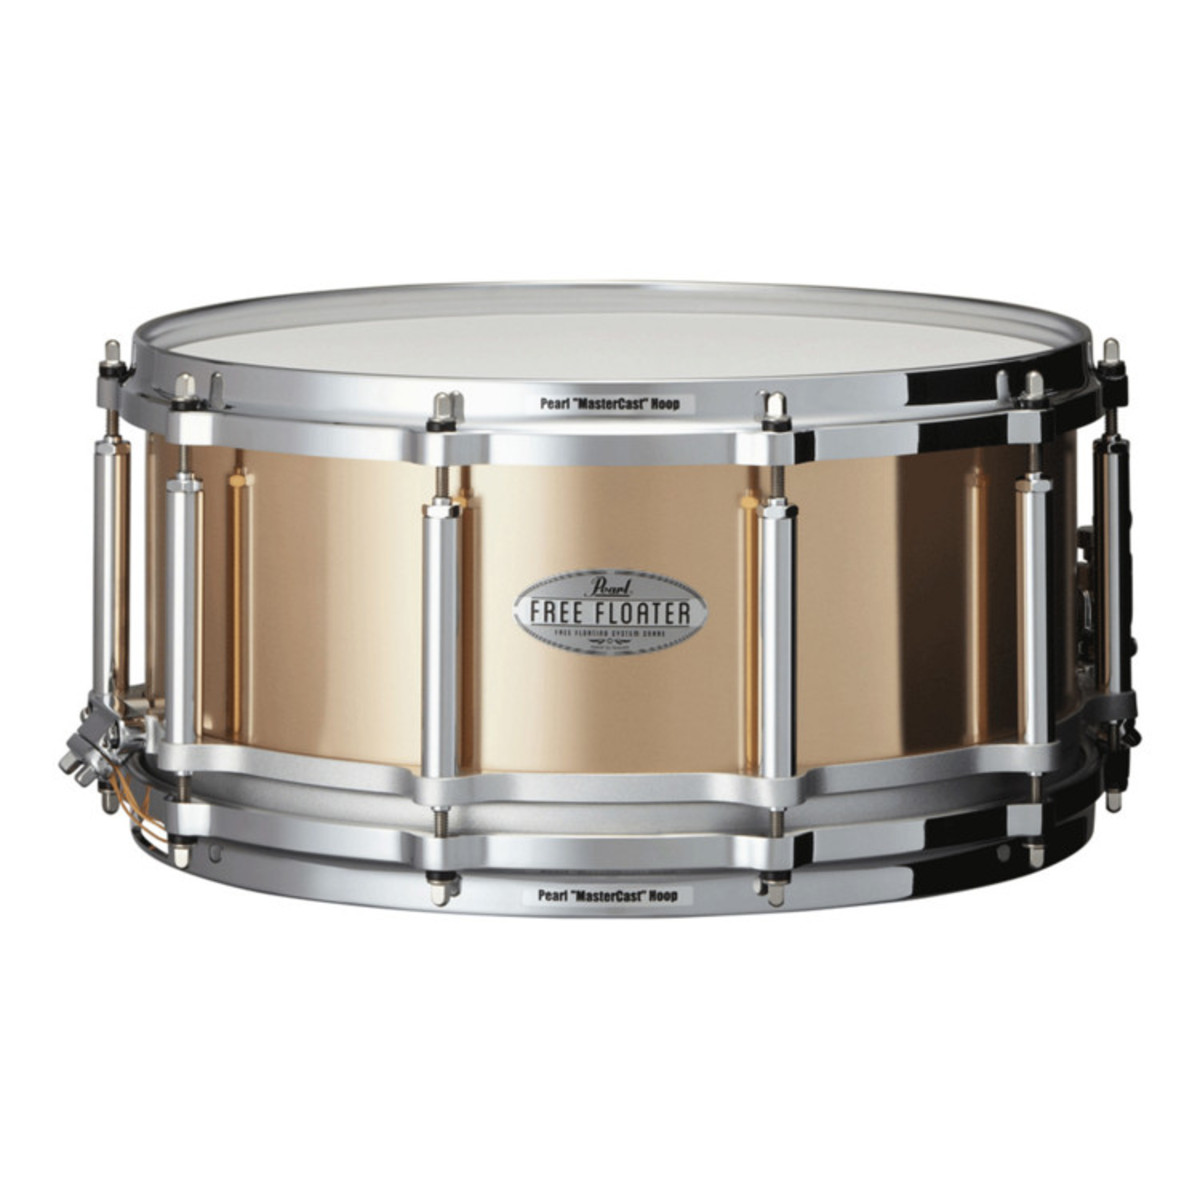 Pearl FTPB1465 Free Floater 14 x 6.5 Snare Drum Phosphor Bronze